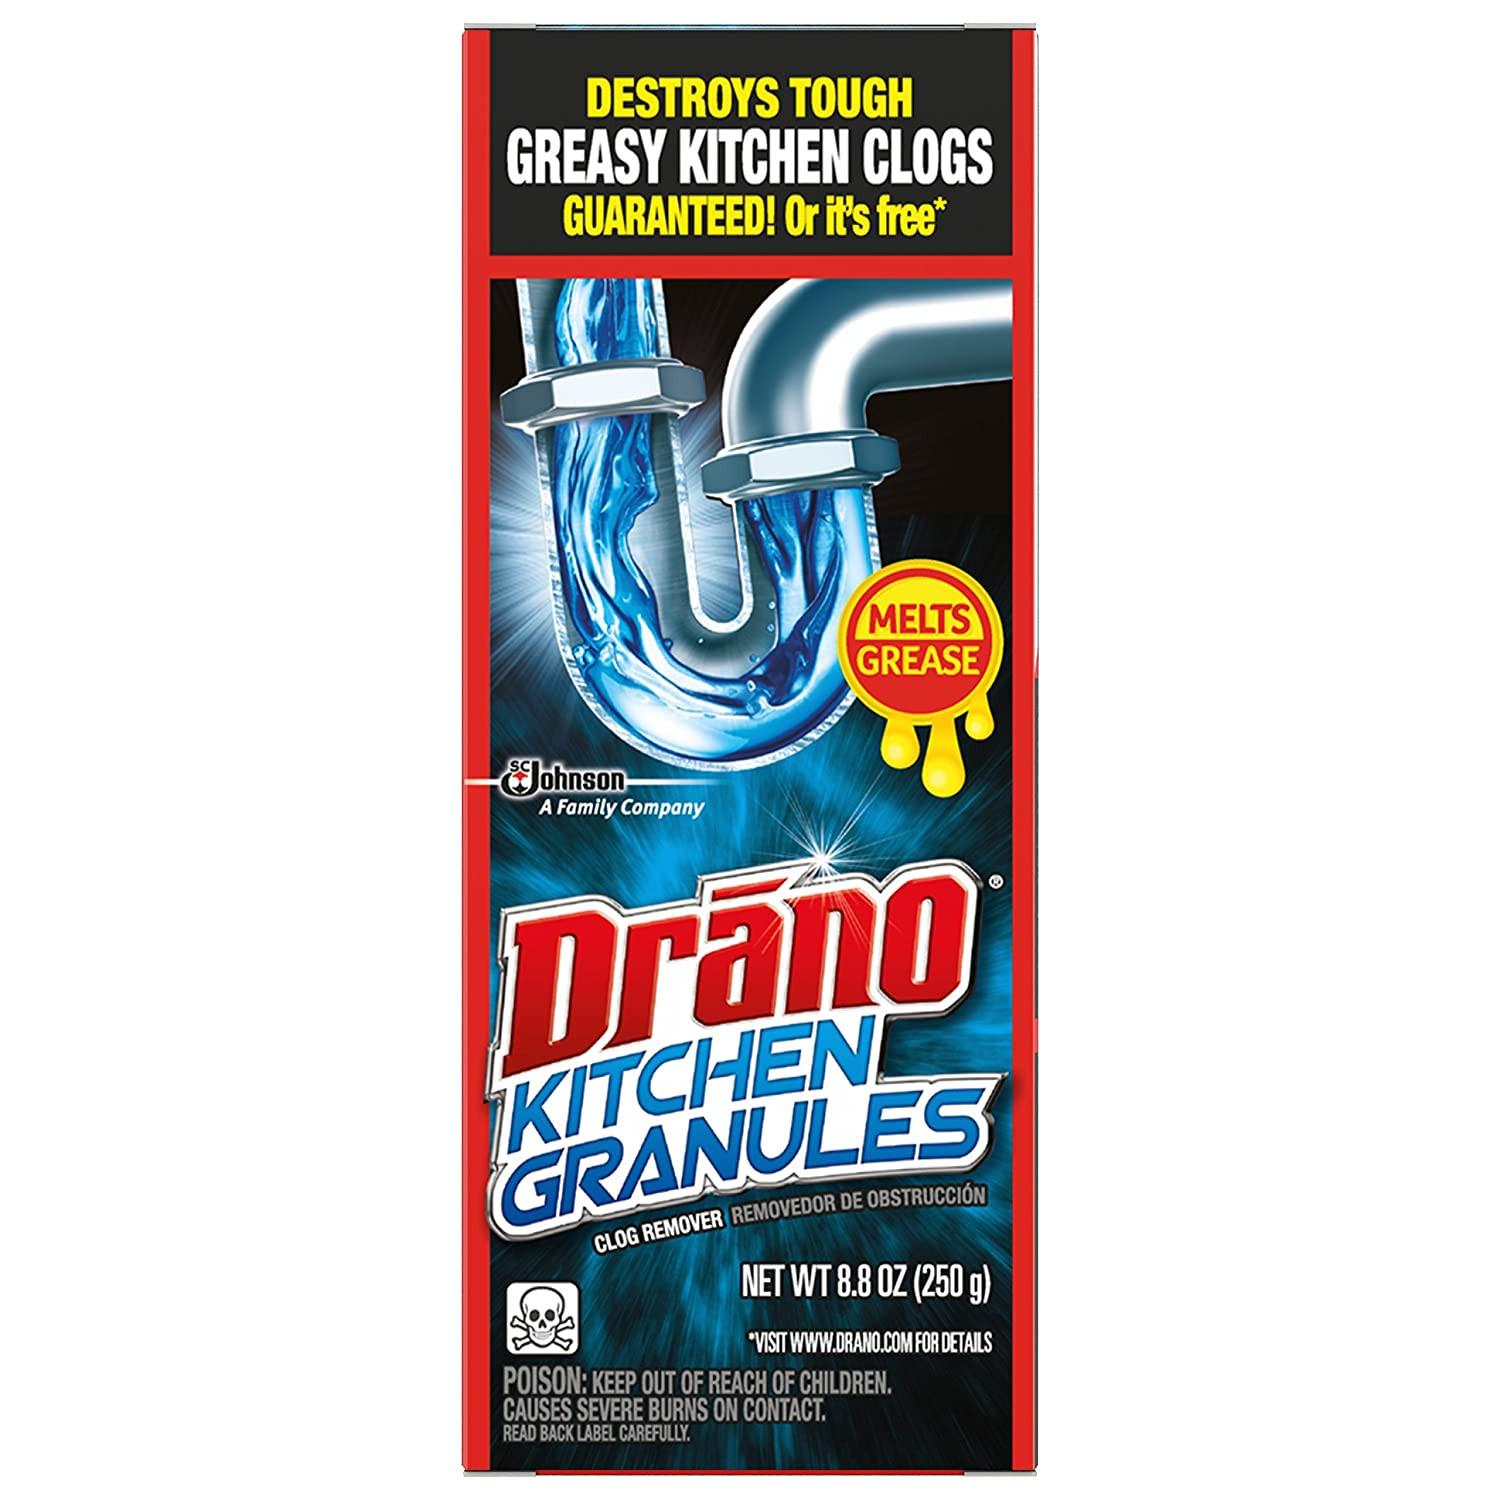 Amazon.com: Drano Kitchen Granules Clog Remover, 8.8 Ounce: Health ...